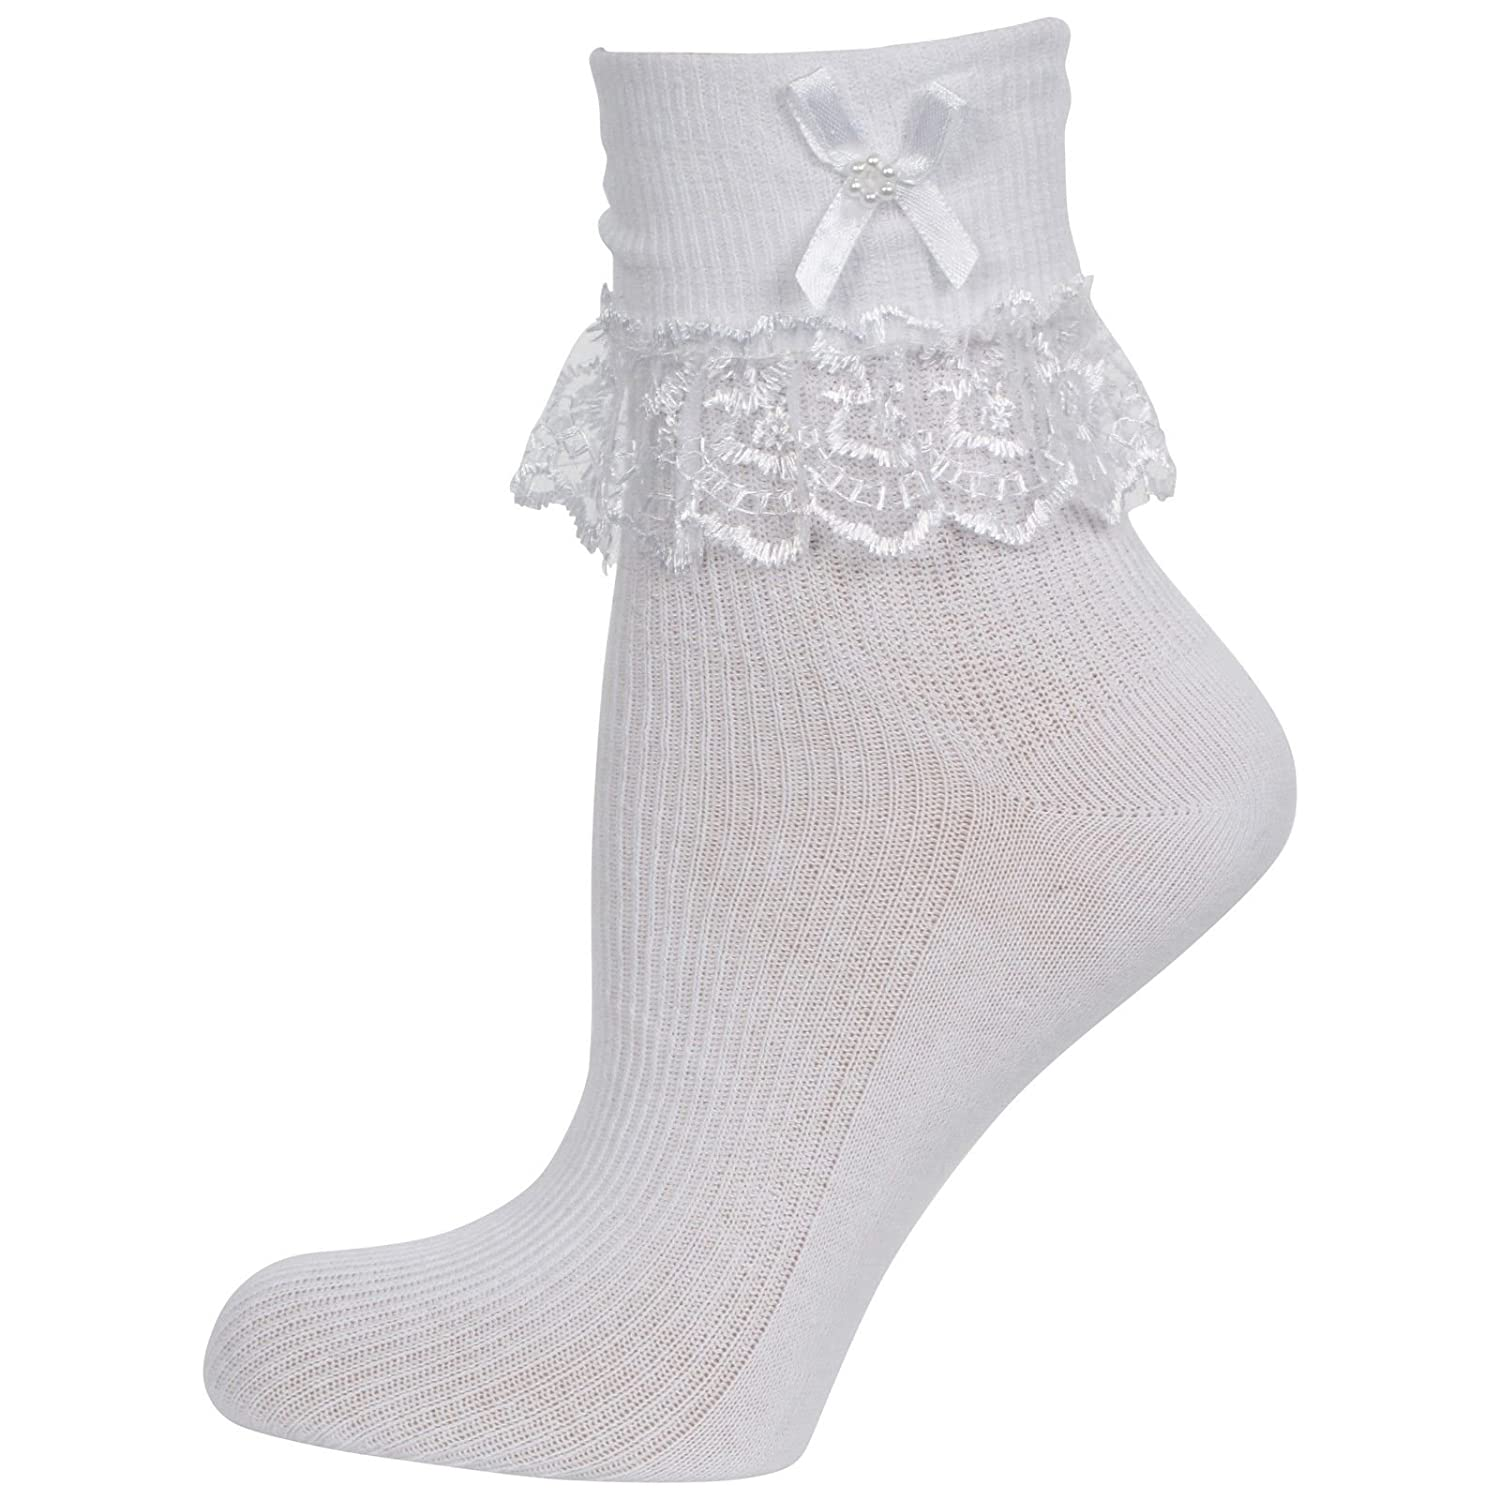 Cute Decorative Baby Girl White Cream/Ivory Frilly Lace Socks (Newborn to 10 years old) 10% with TWO more purchase